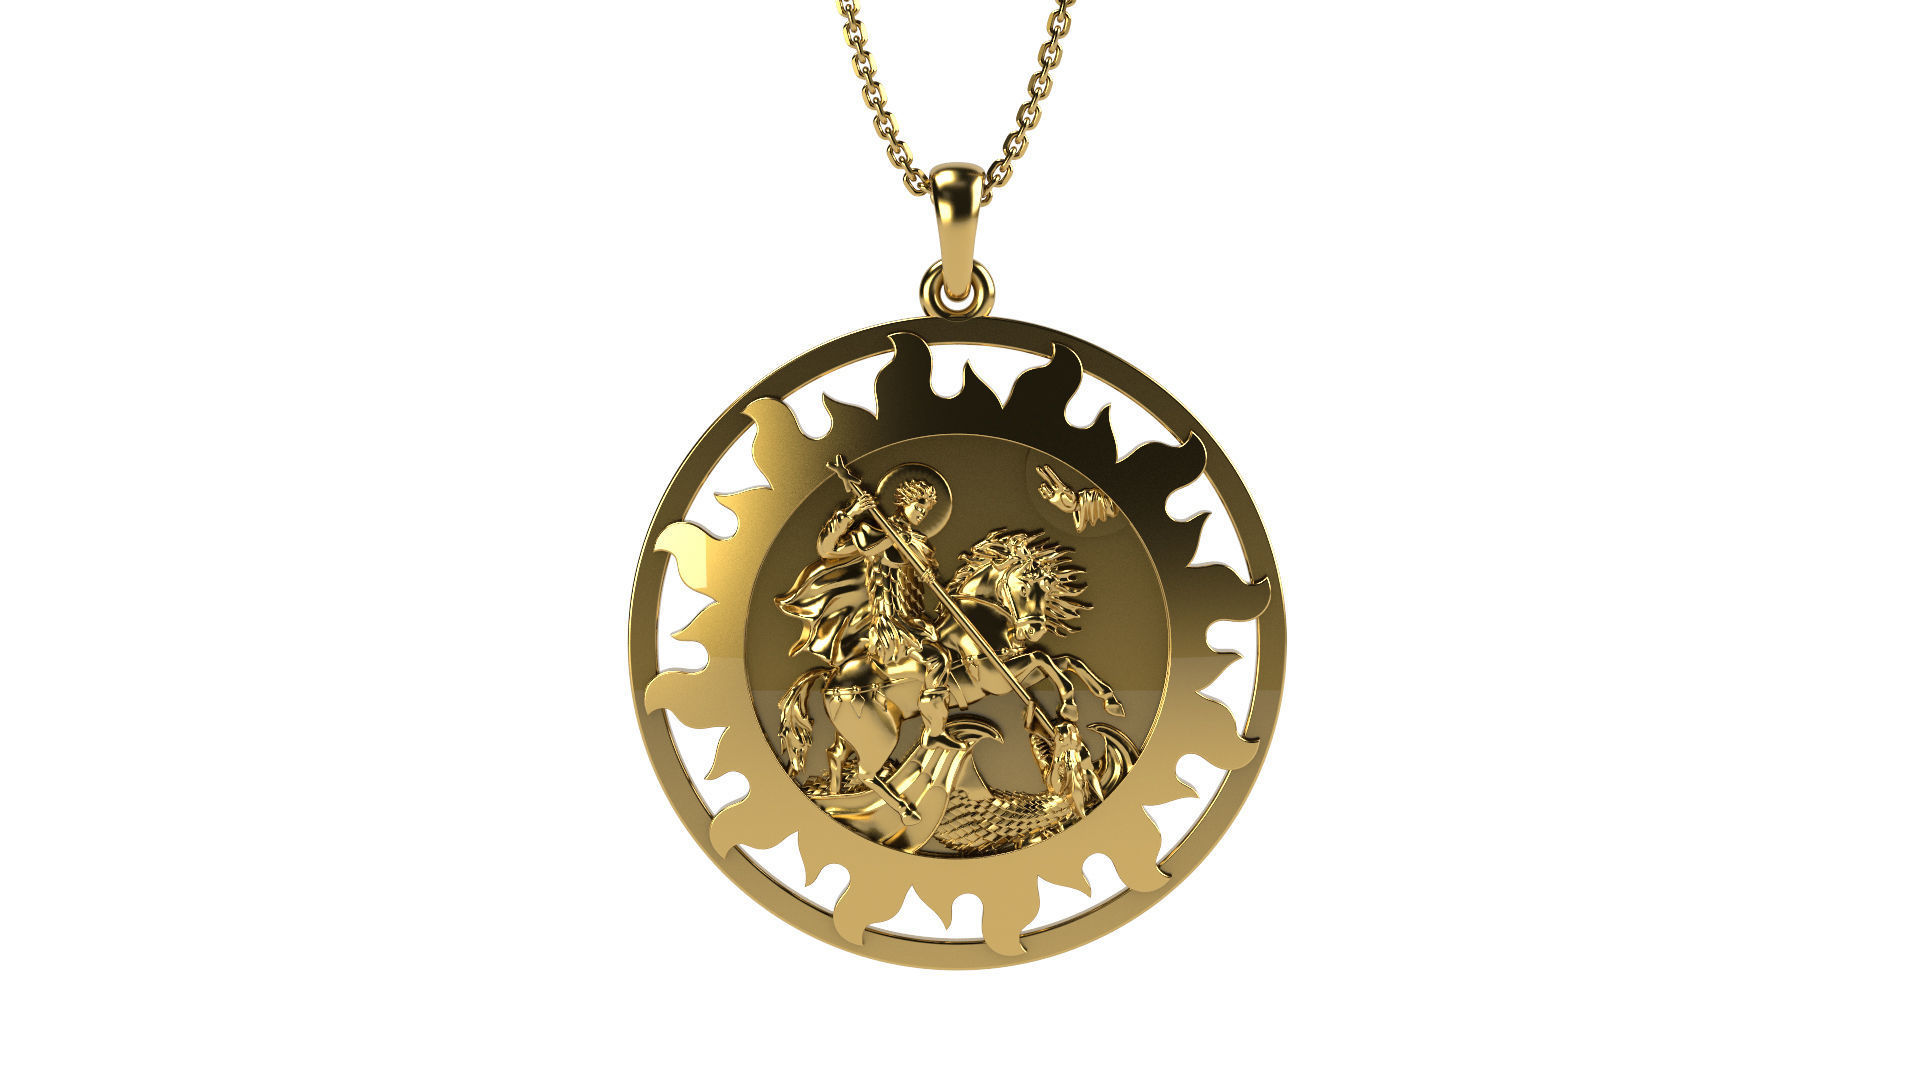 dragon sanctus jorge jewelry from anniyo killing item pendants poderosa coin la saint de color san st georgius oracion gold george in plated pendant necklaces